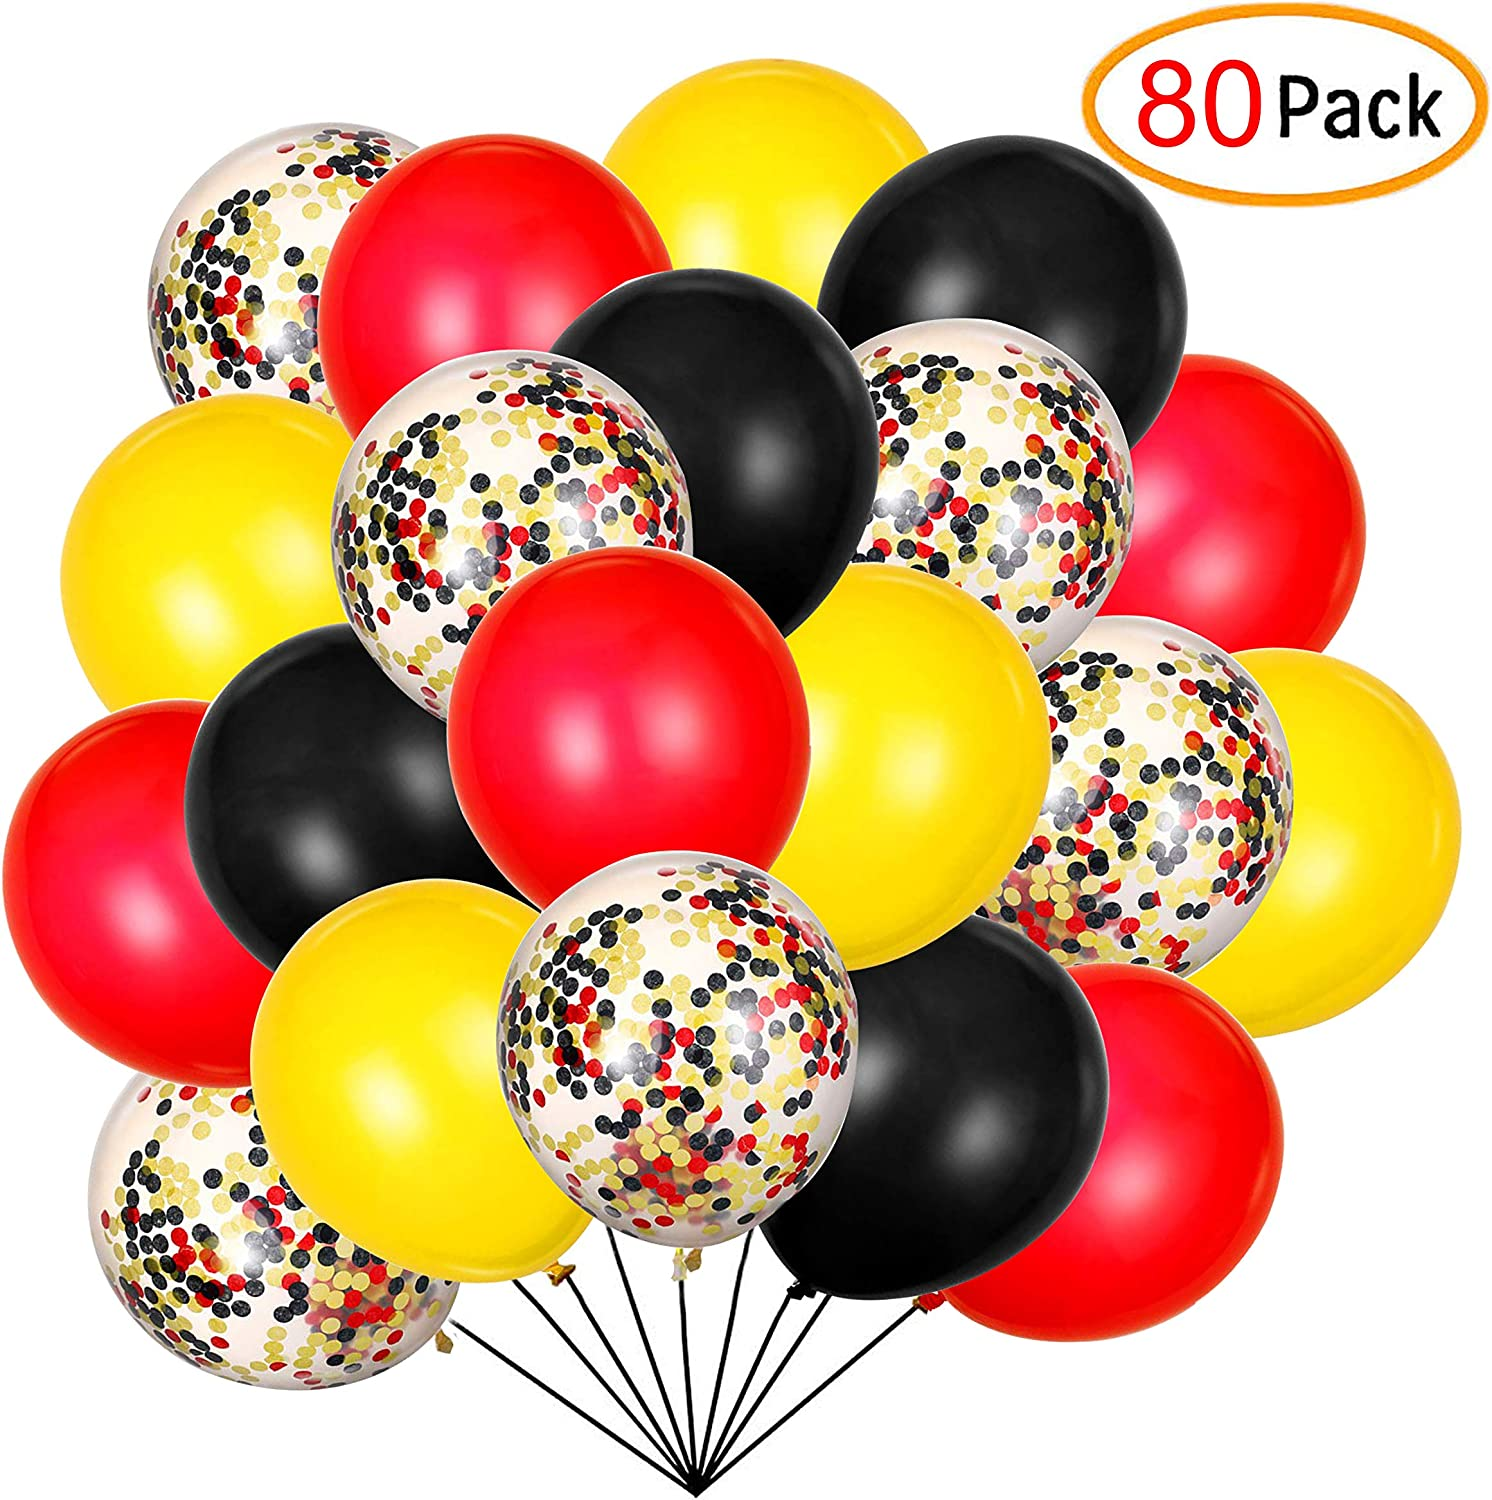 """Black 24  Latex Balloons 12/"""" When Inflated Solid Colors"""